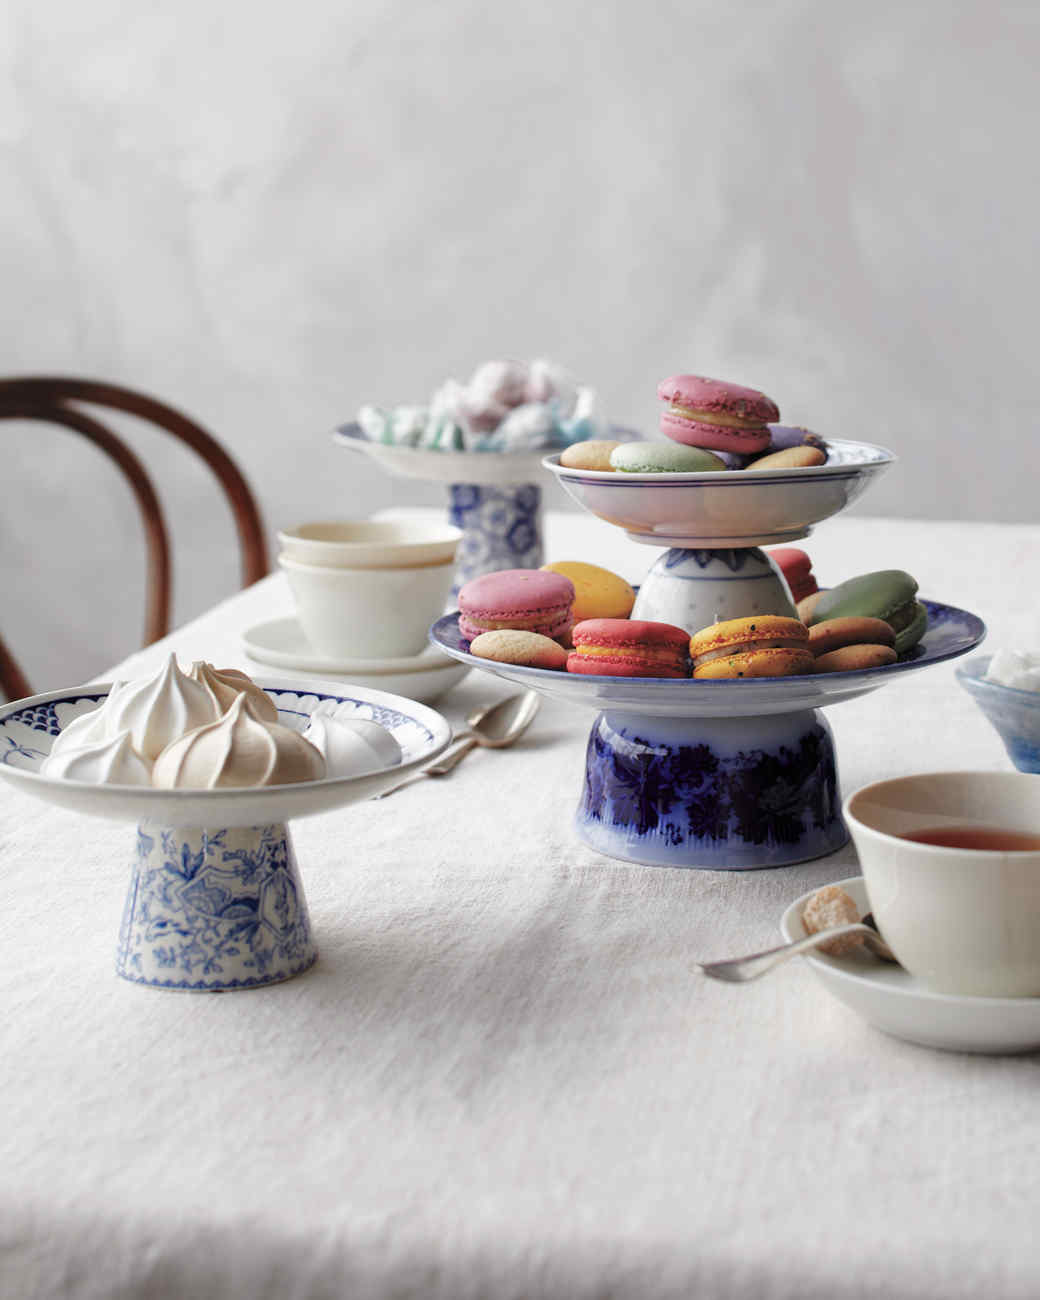 cakestands-teaparty-mld108936.jpg